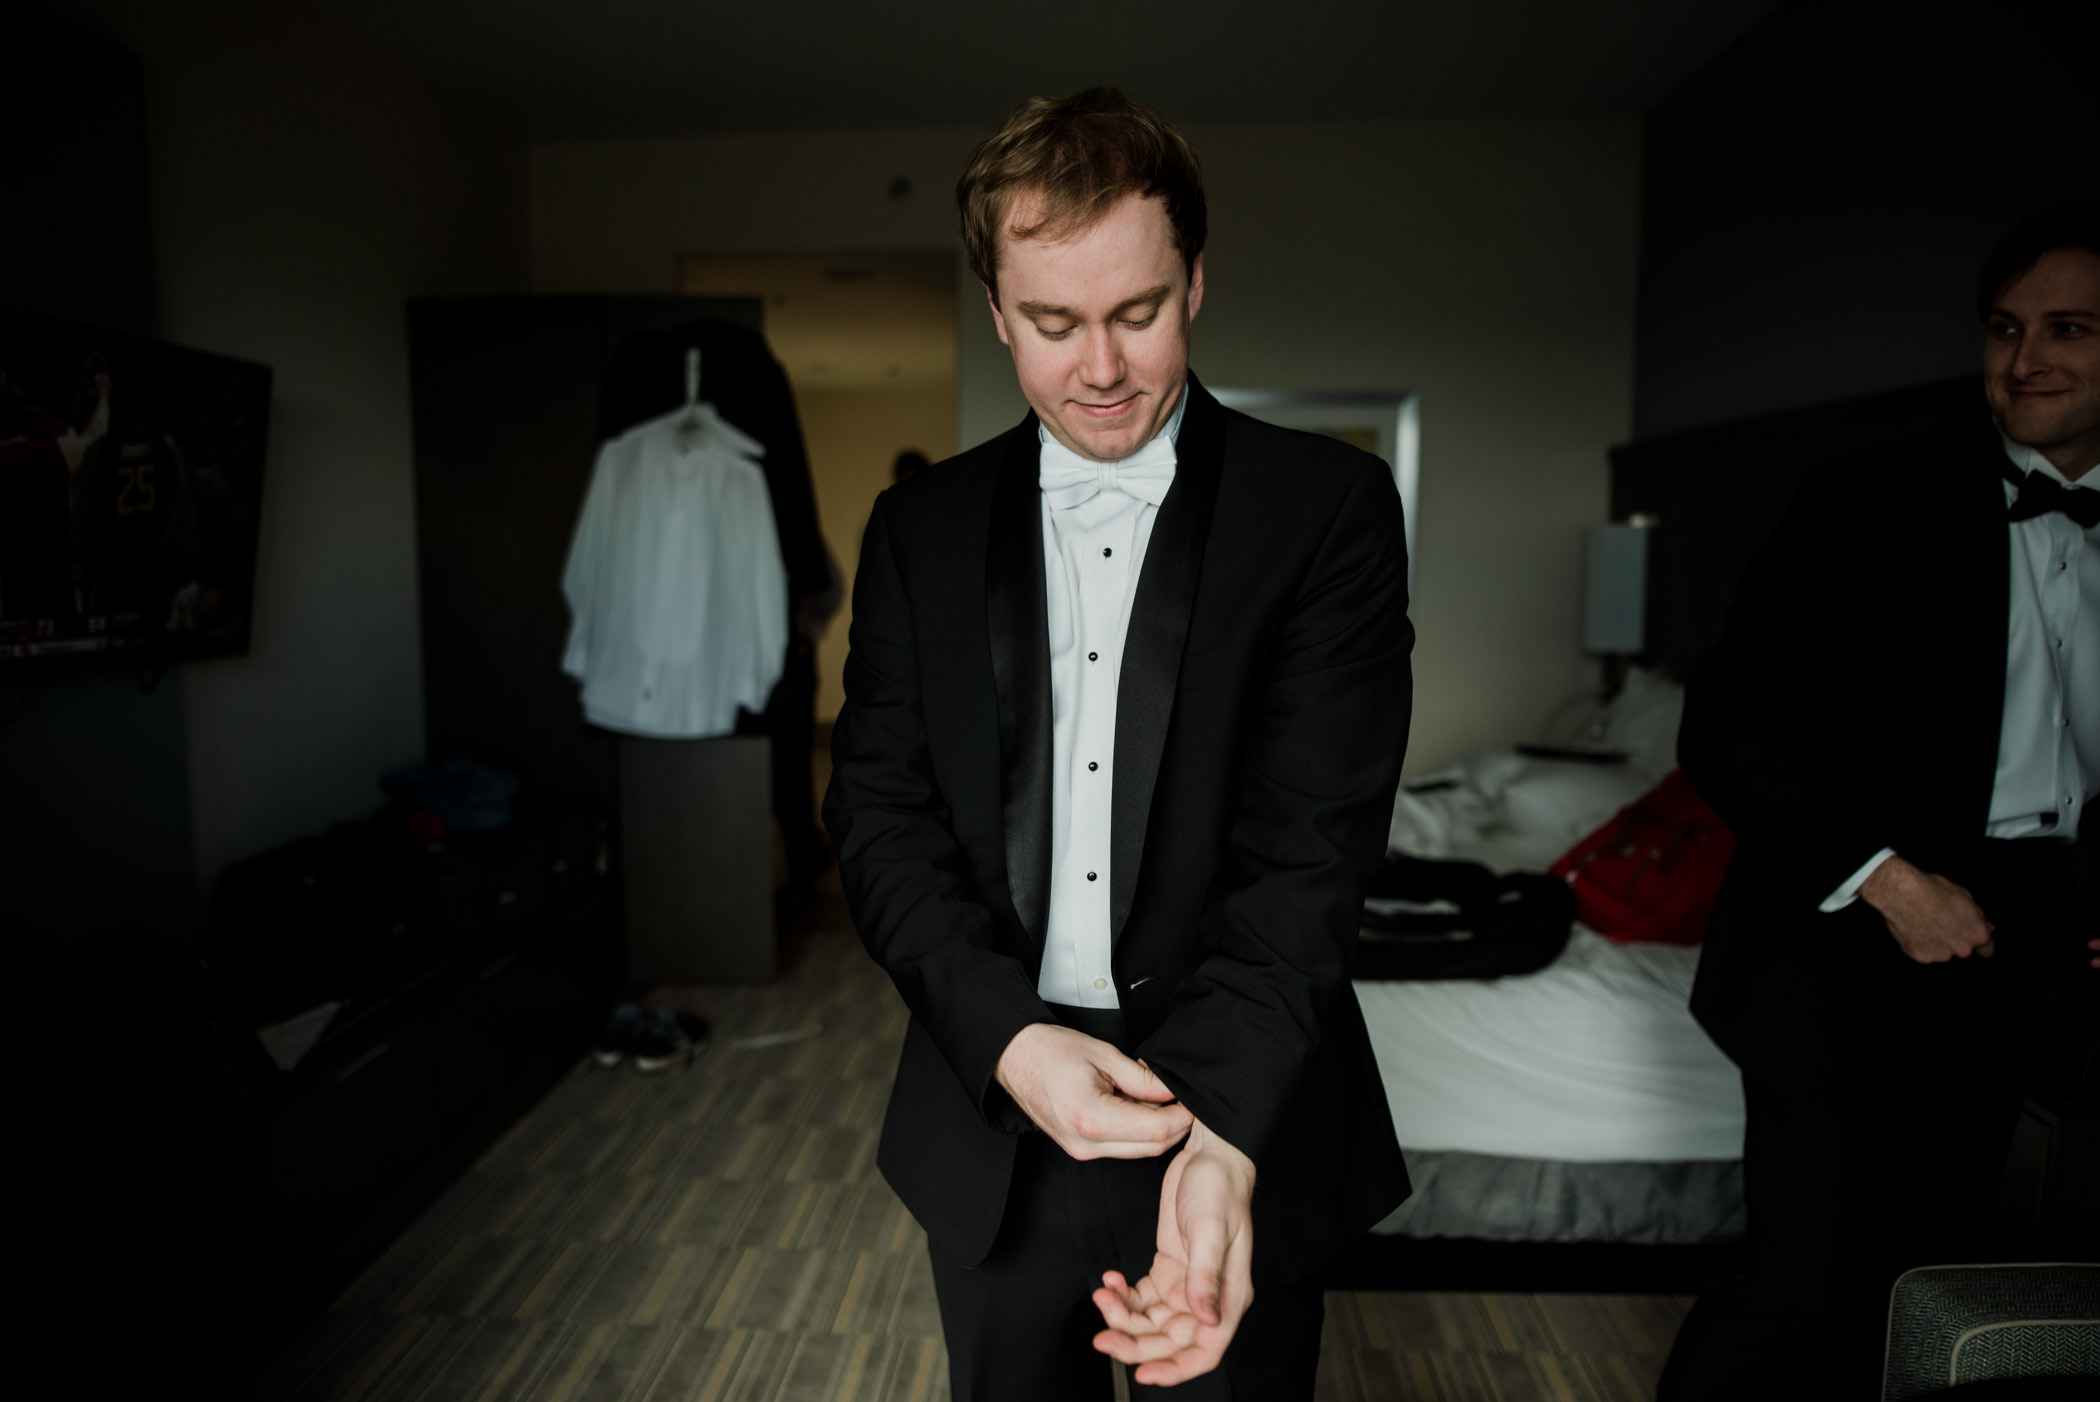 palafox-wharf-pensacola-wedding-groom-getting-ready-megburkephotography